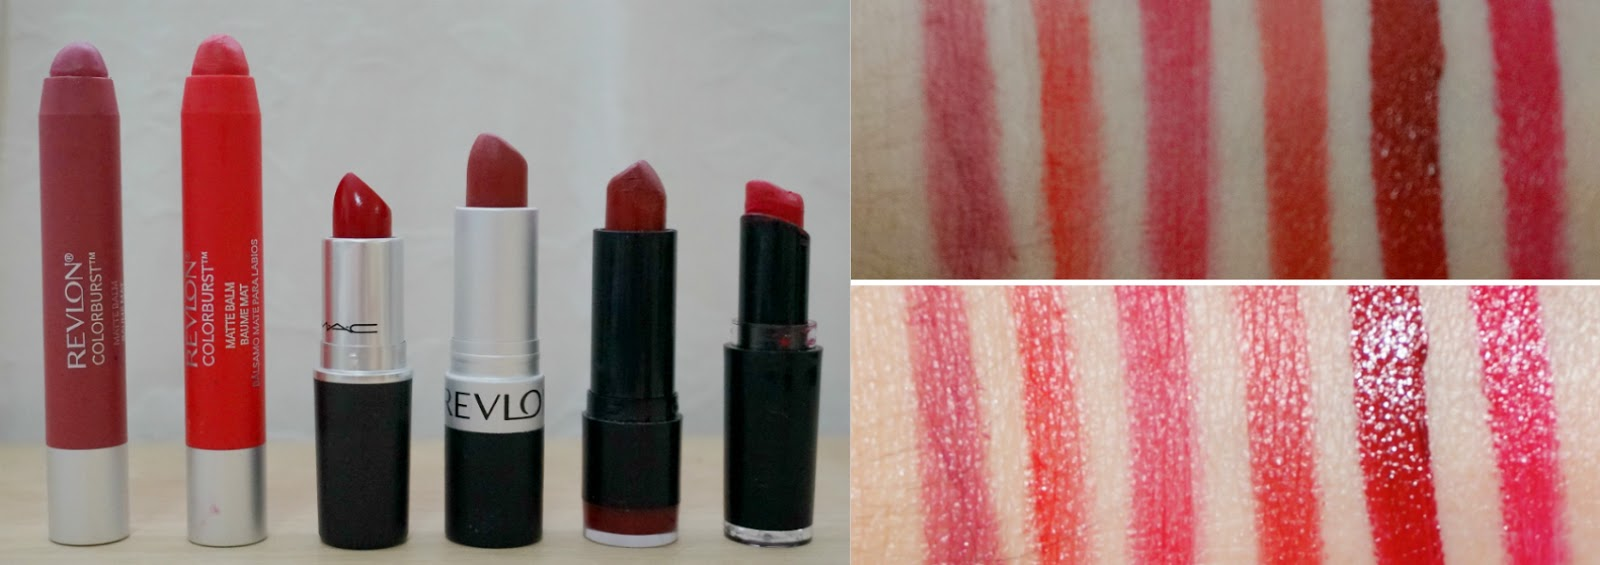 Revlon Sultry, Revlon Striking, MAC Ruby Woo, Revlon In the Red, NYX Snow White, Wet n Wild Stoplight Red